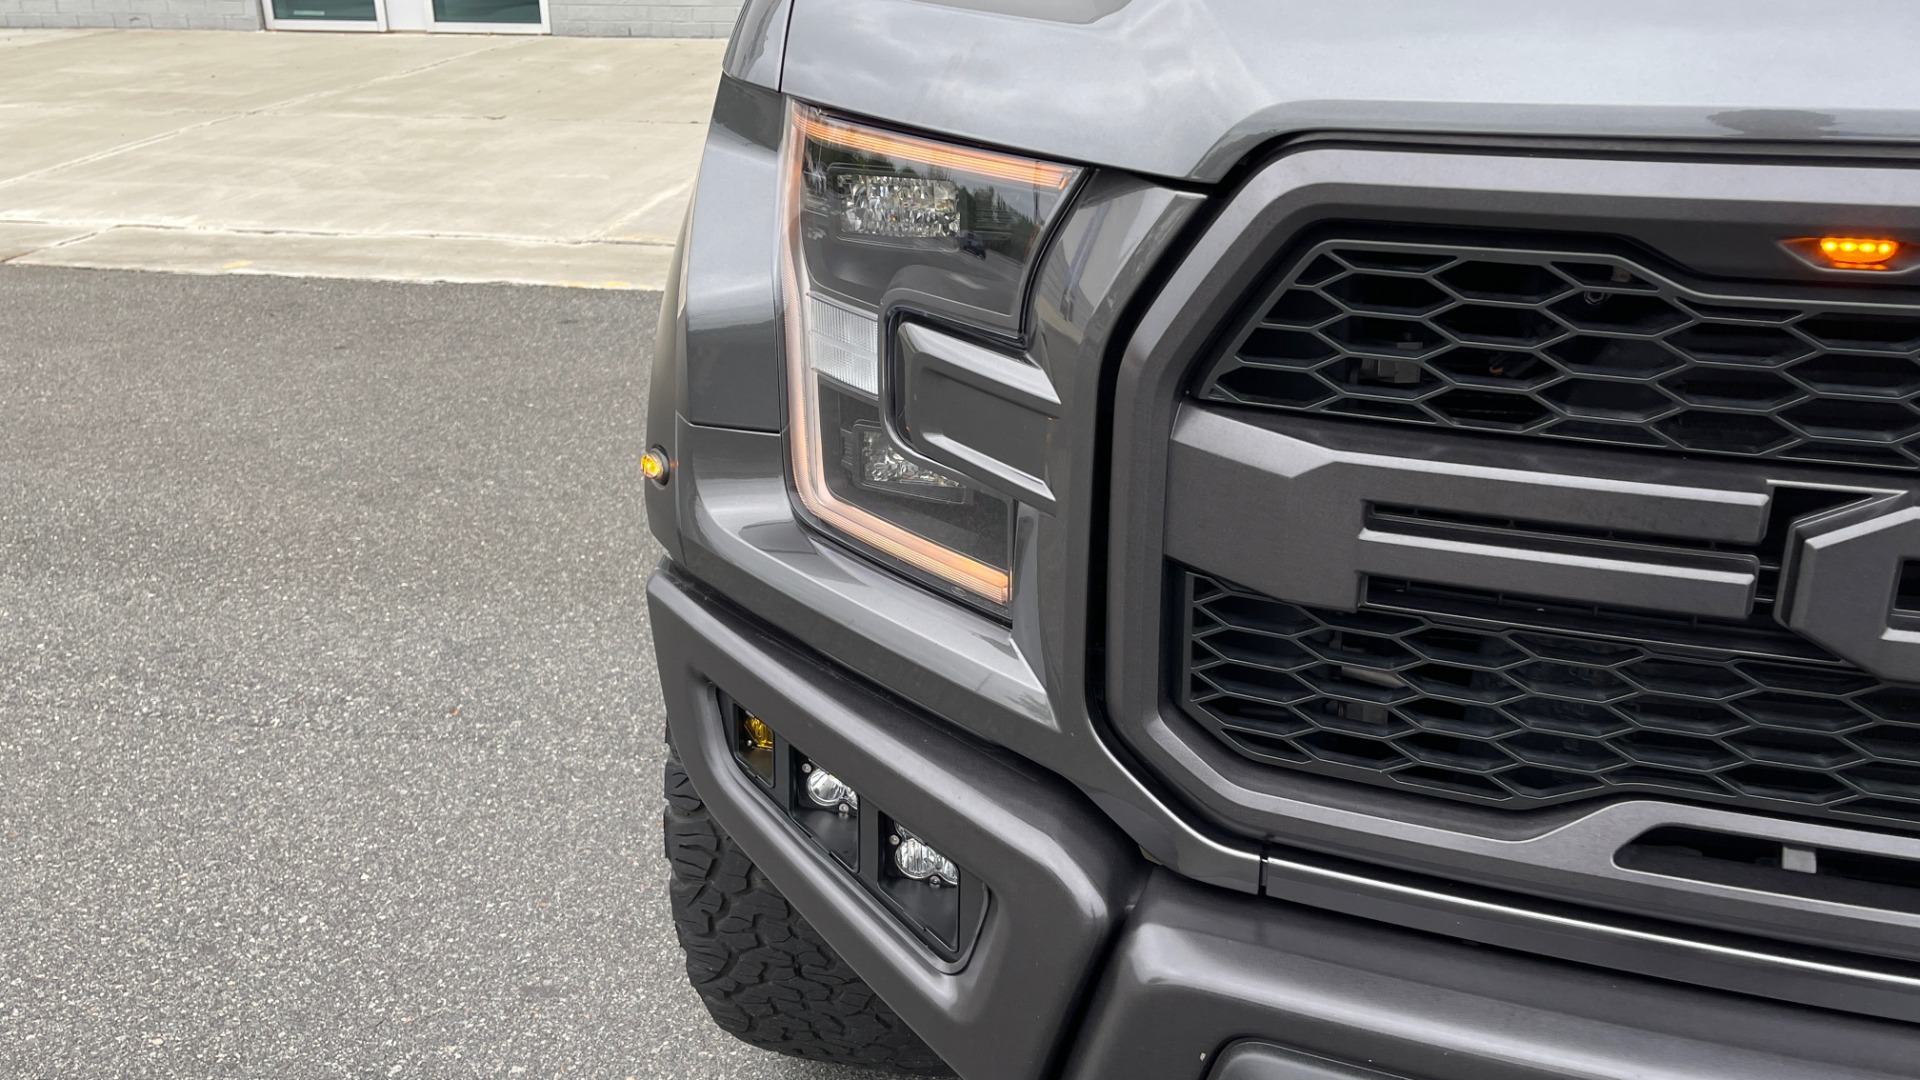 Used 2020 Ford F-150 RAPTOR 4X4 SUPERCREW / NAV / B&O SOUND / SUNROOF / REARVIEW for sale $74,900 at Formula Imports in Charlotte NC 28227 10